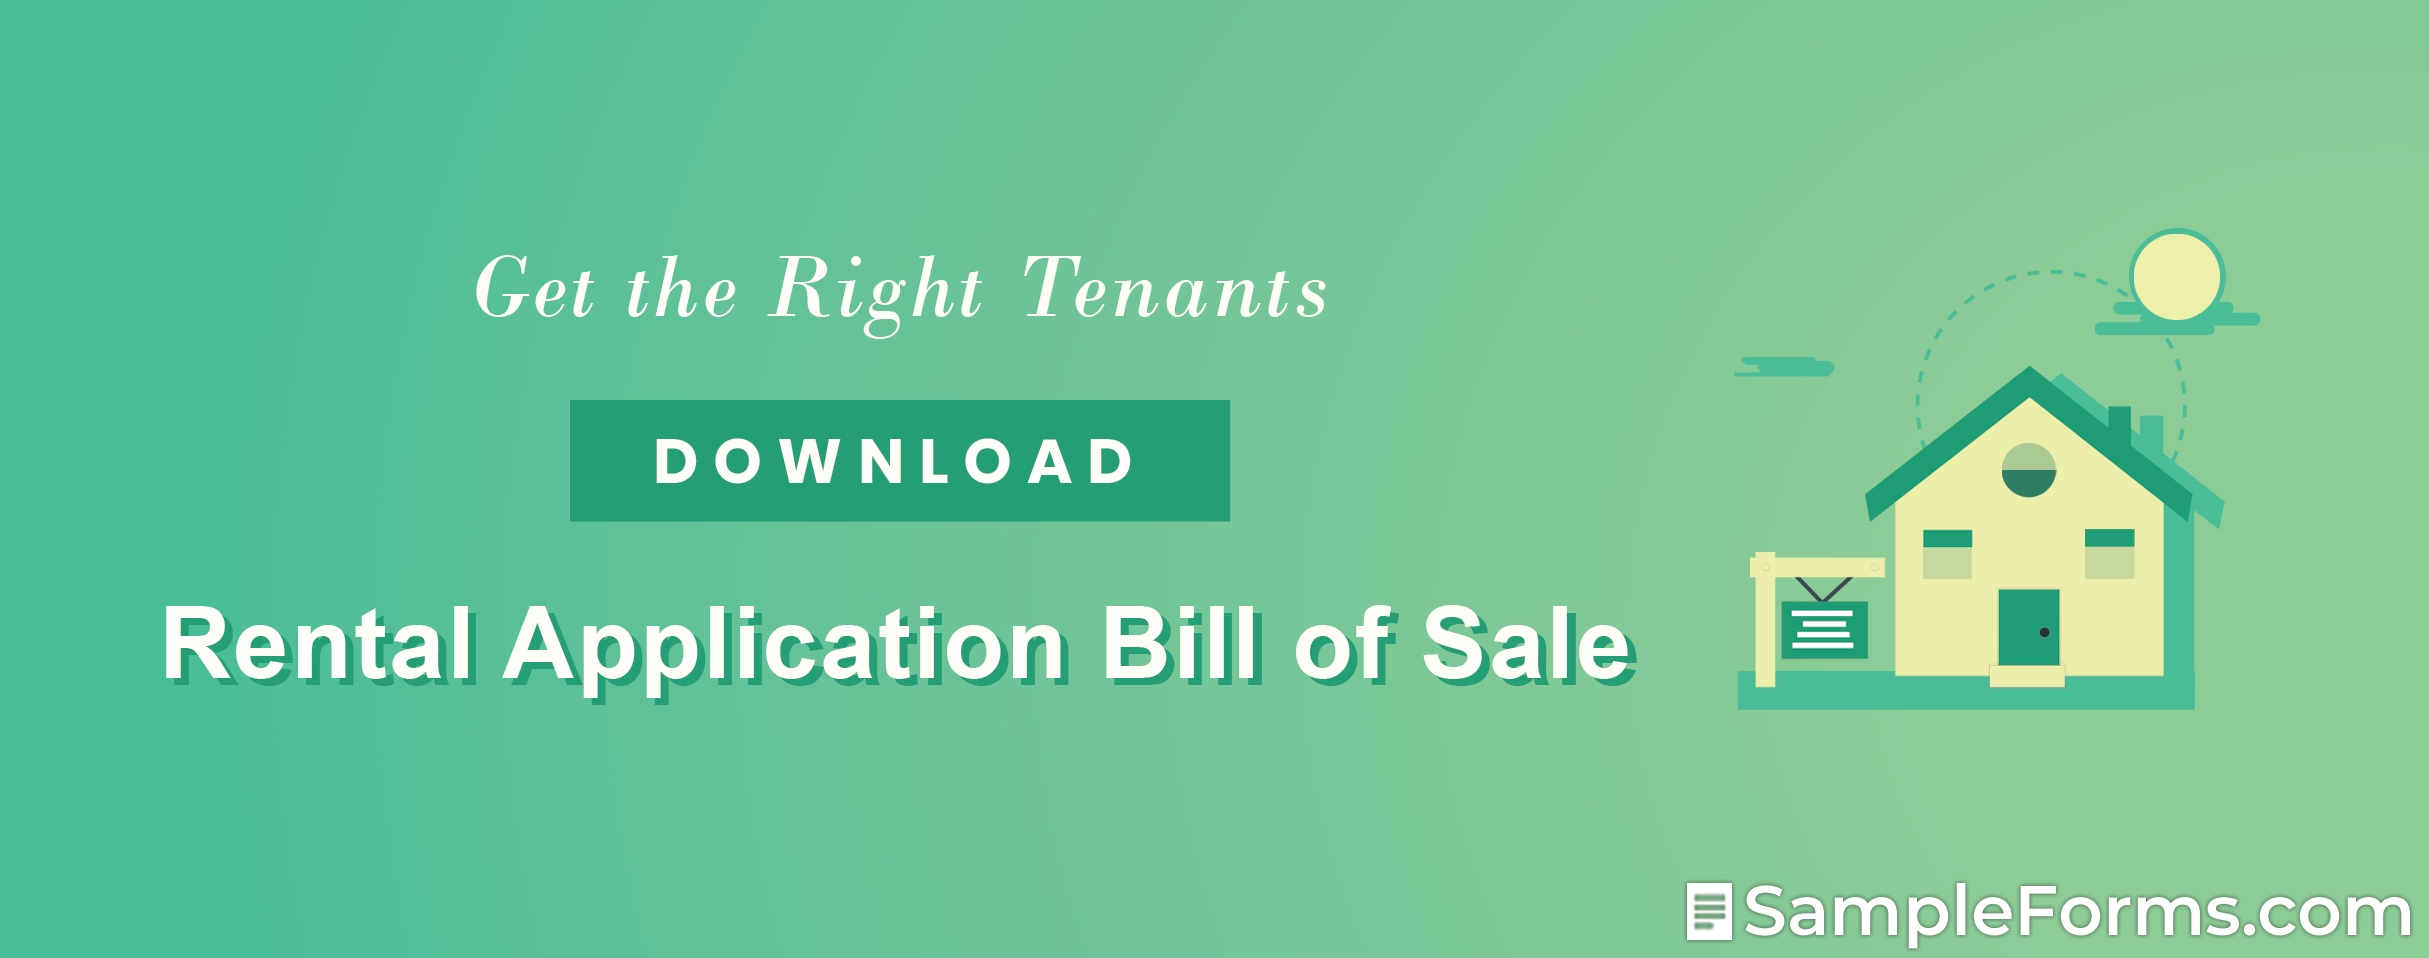 Rental Application Bill of Sale Form